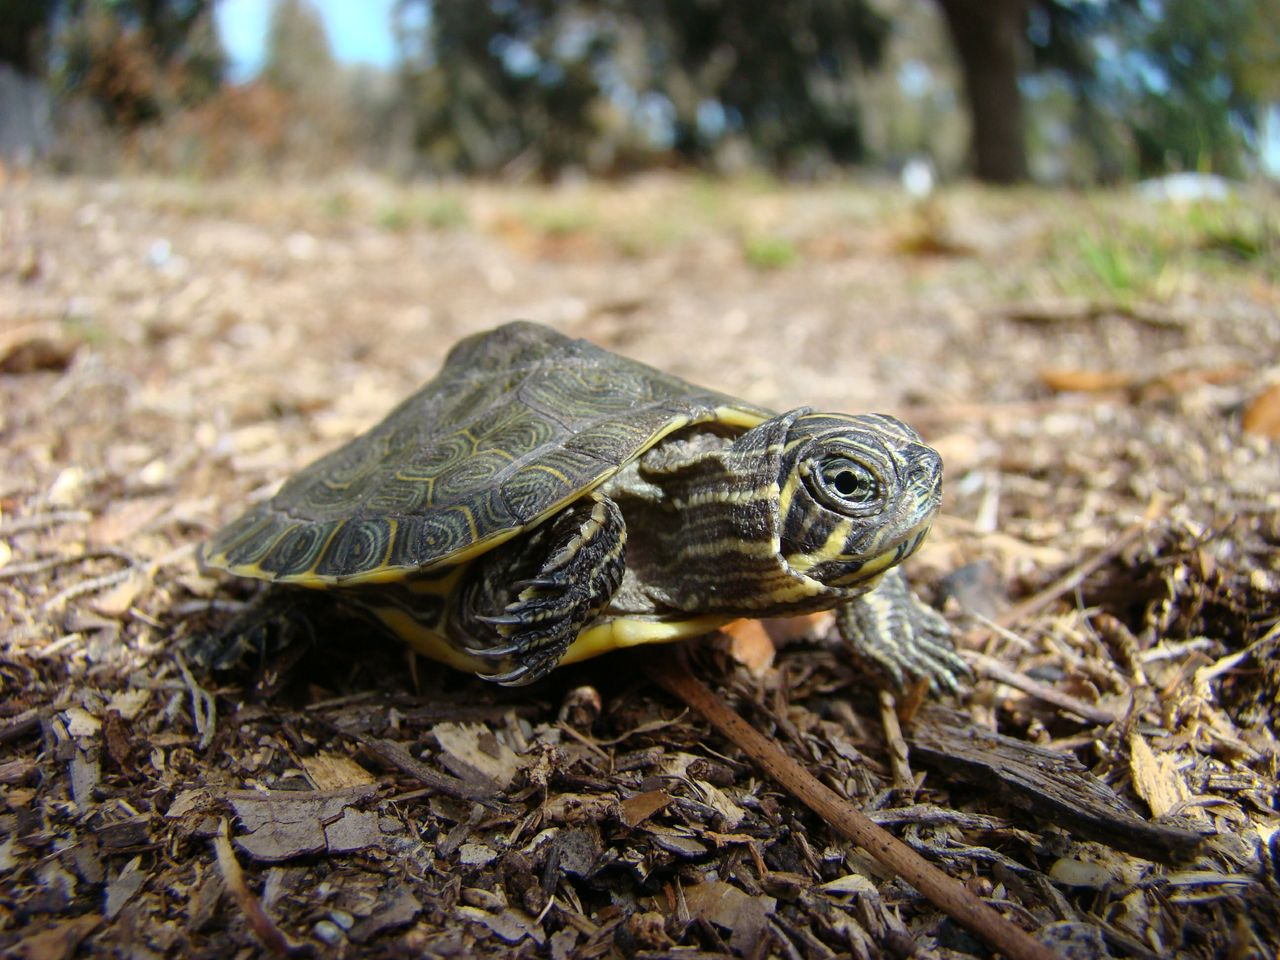 Hatchling Suwannee cooter found in nest along the Alafia River at Riverview, Florida.